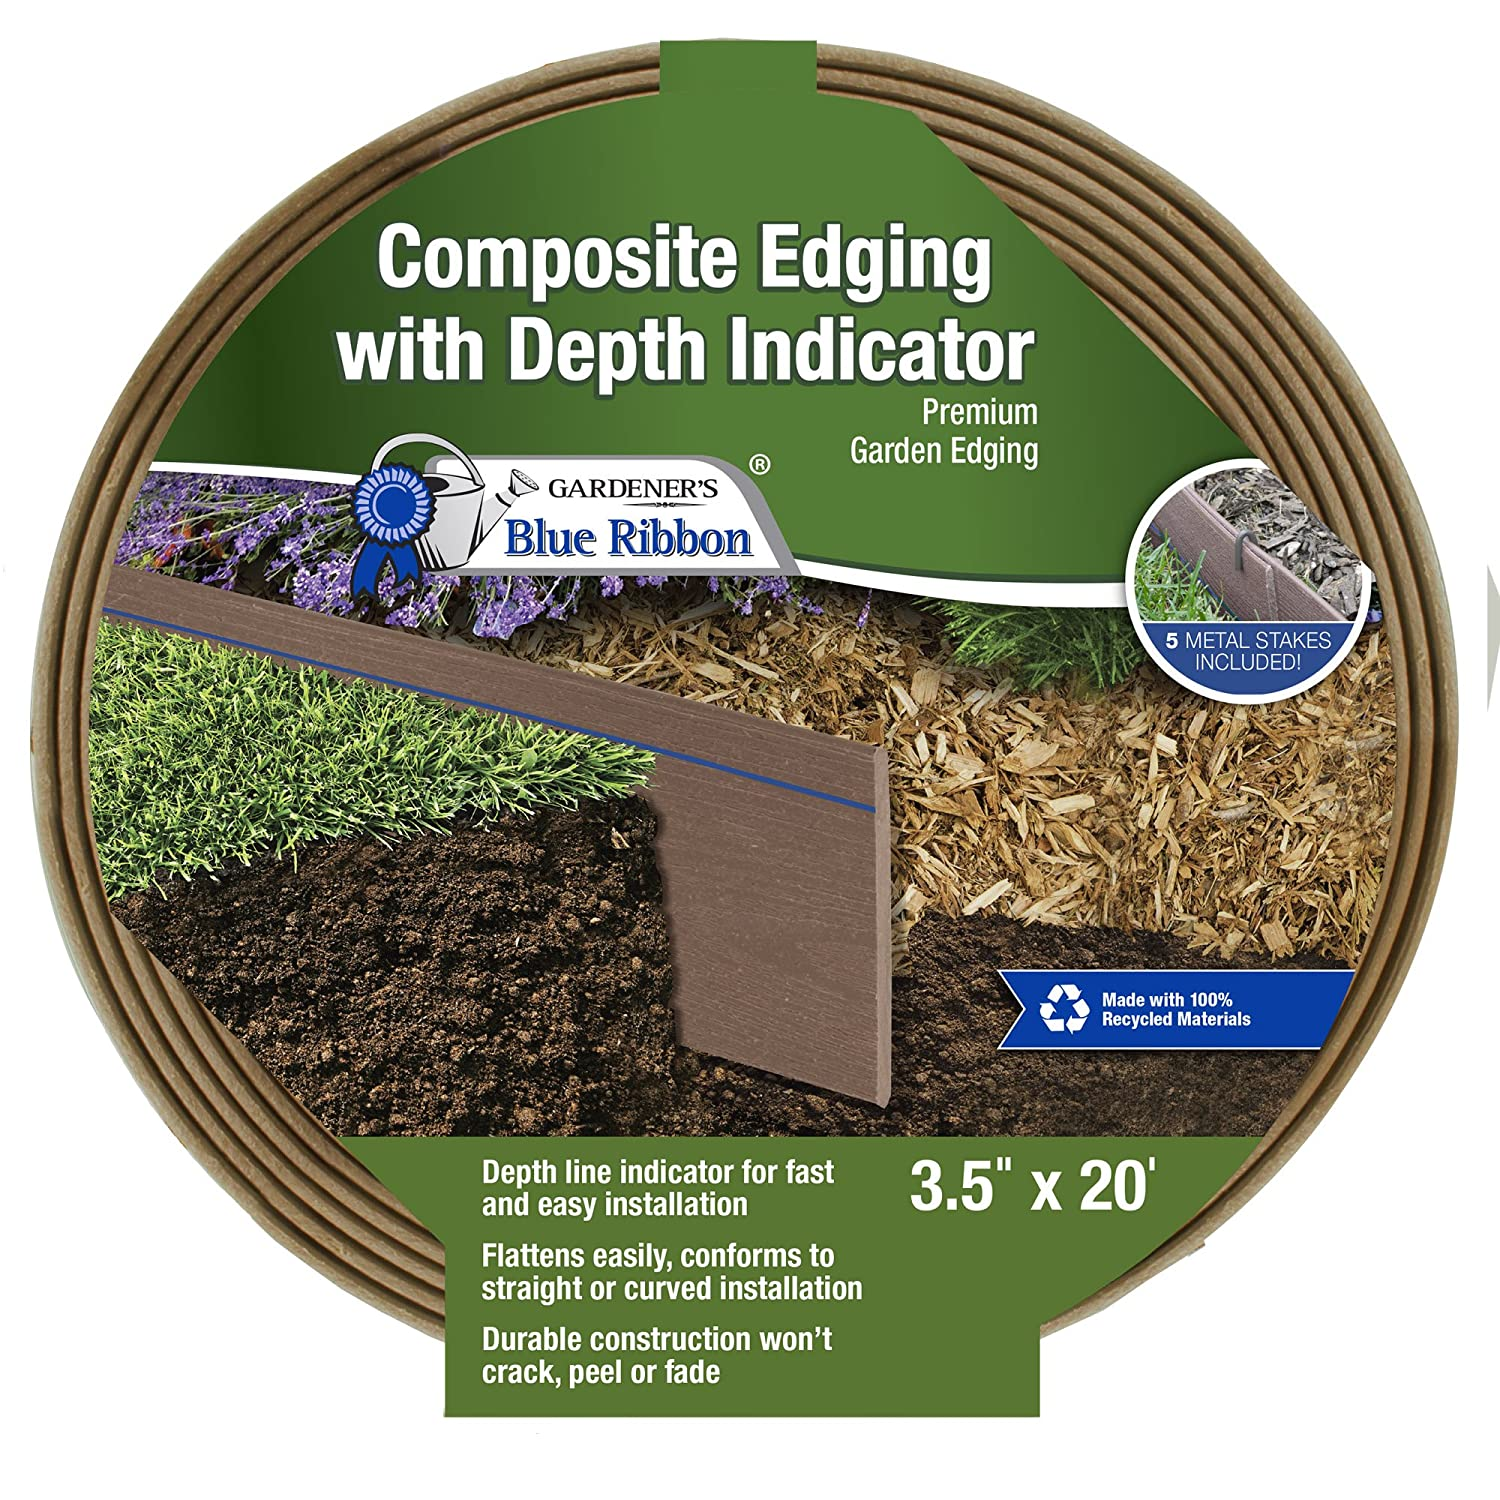 Gardener s Blue Ribbon 903010BR Composite Lawn Edging, One Size, Cedar Brown